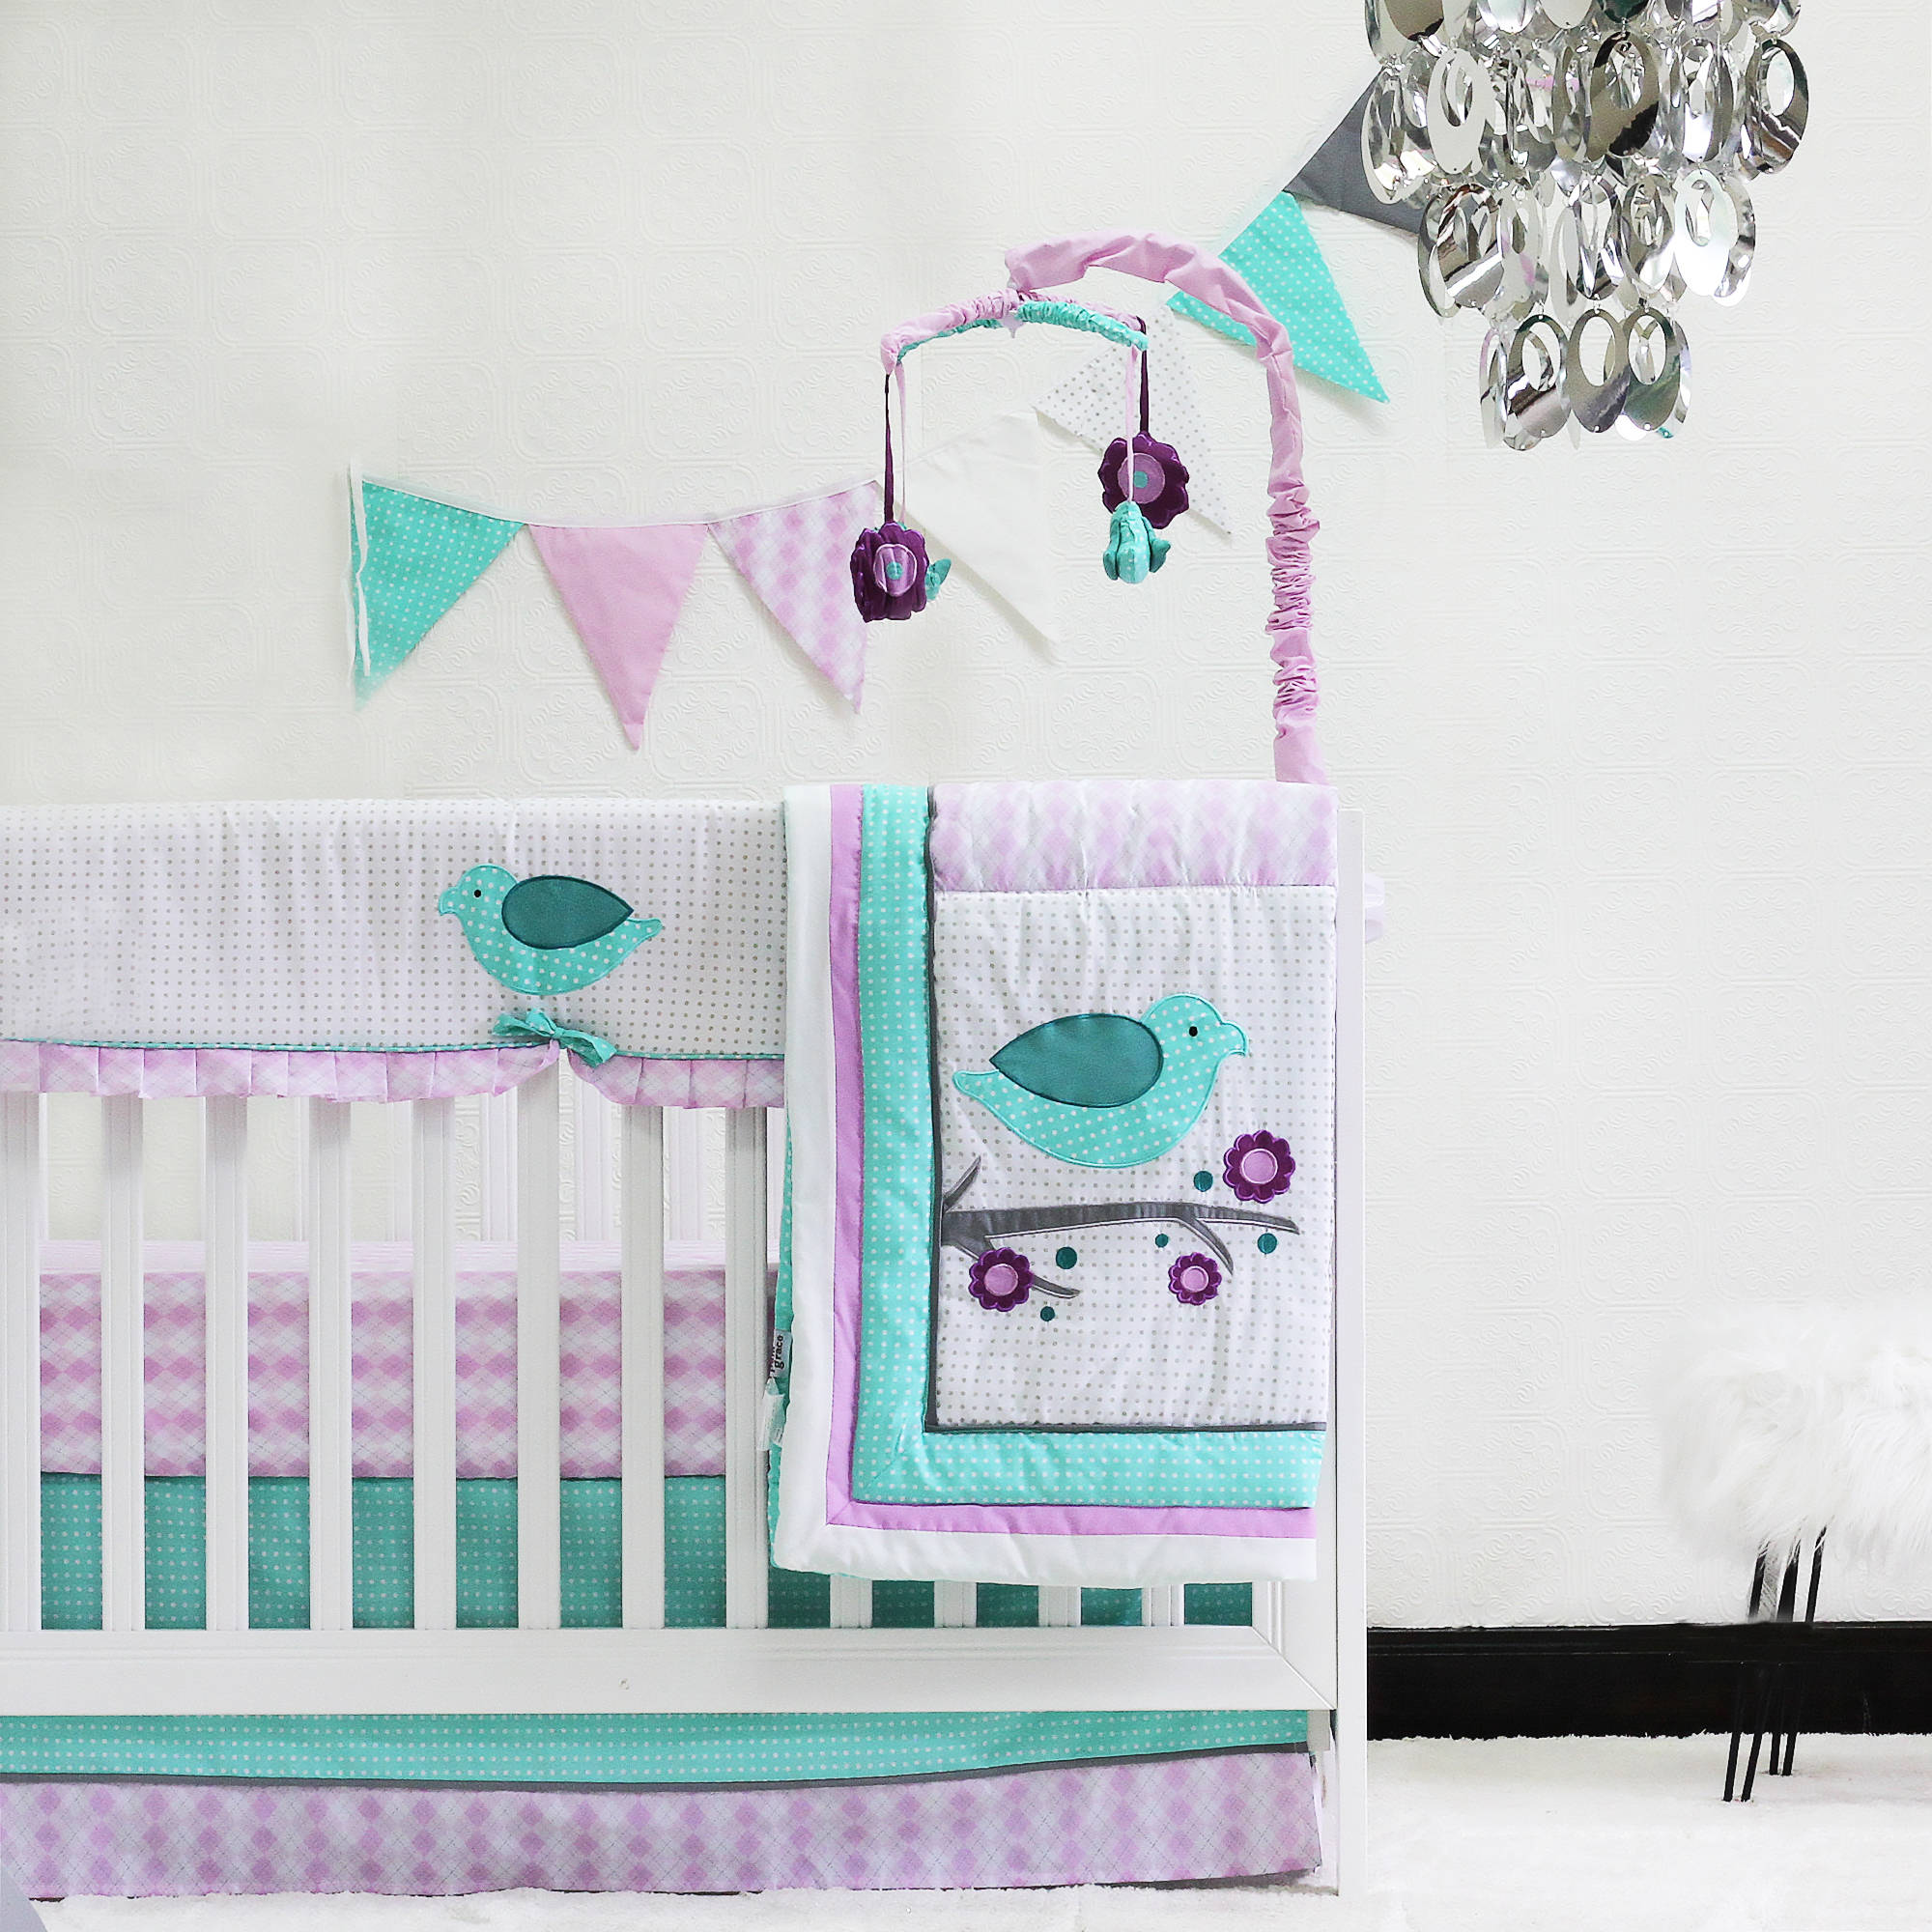 Pam Grace Creations Lovebird 10 Piece Crib Bedding Set, Lavendar